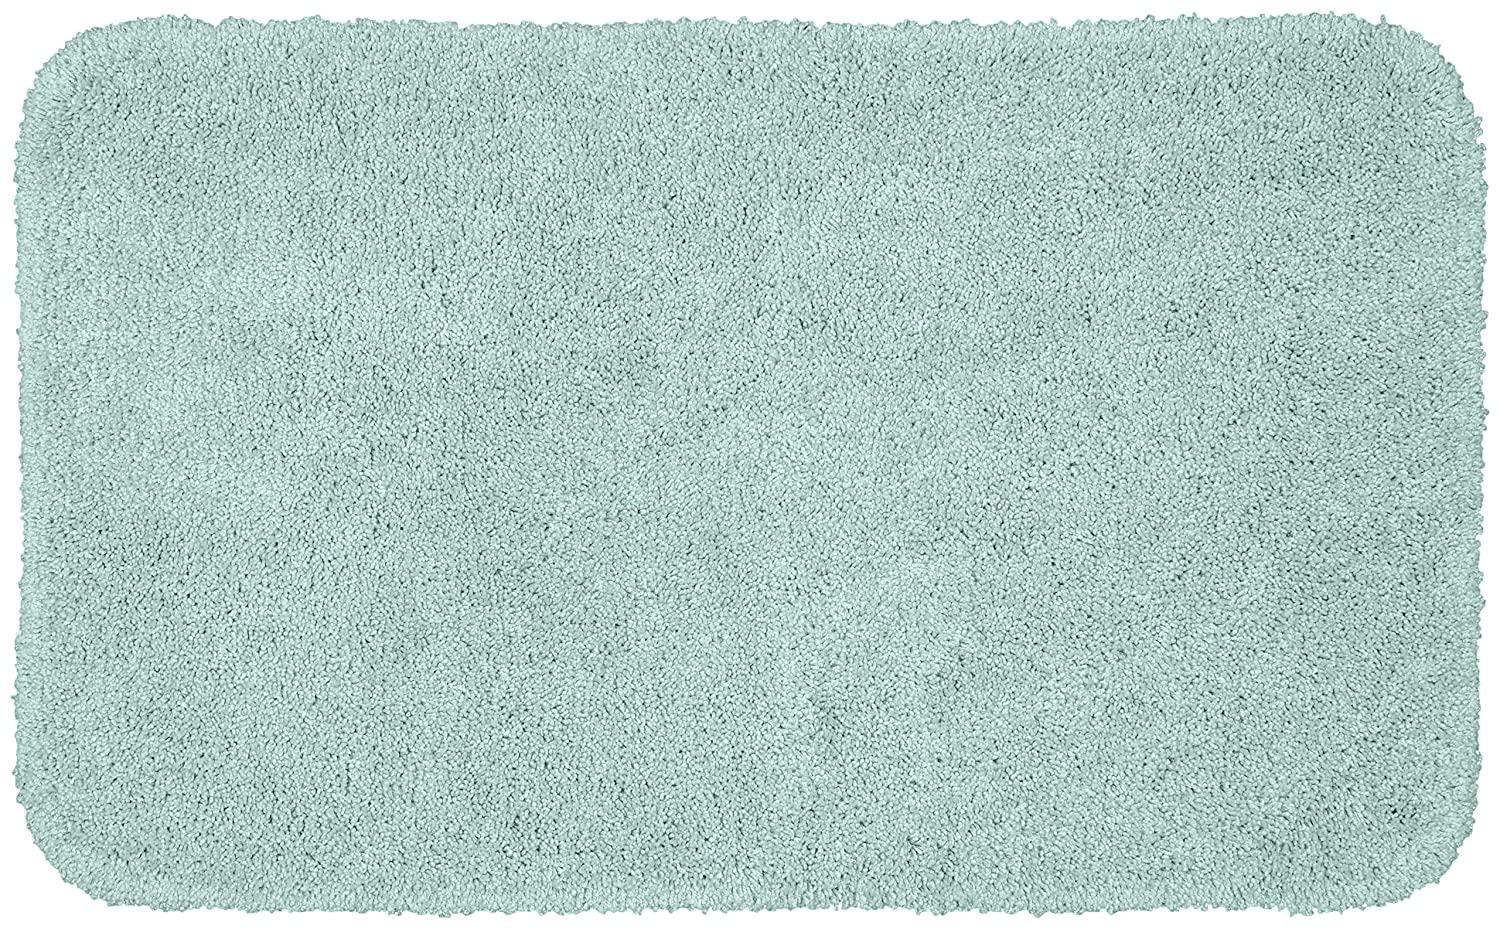 Sea Foam 30-Inch by 50-Inch Garland Rug BA100W3P02I6 Serendipity Bath Rug Set, 3-Piece Set, Sea Foam